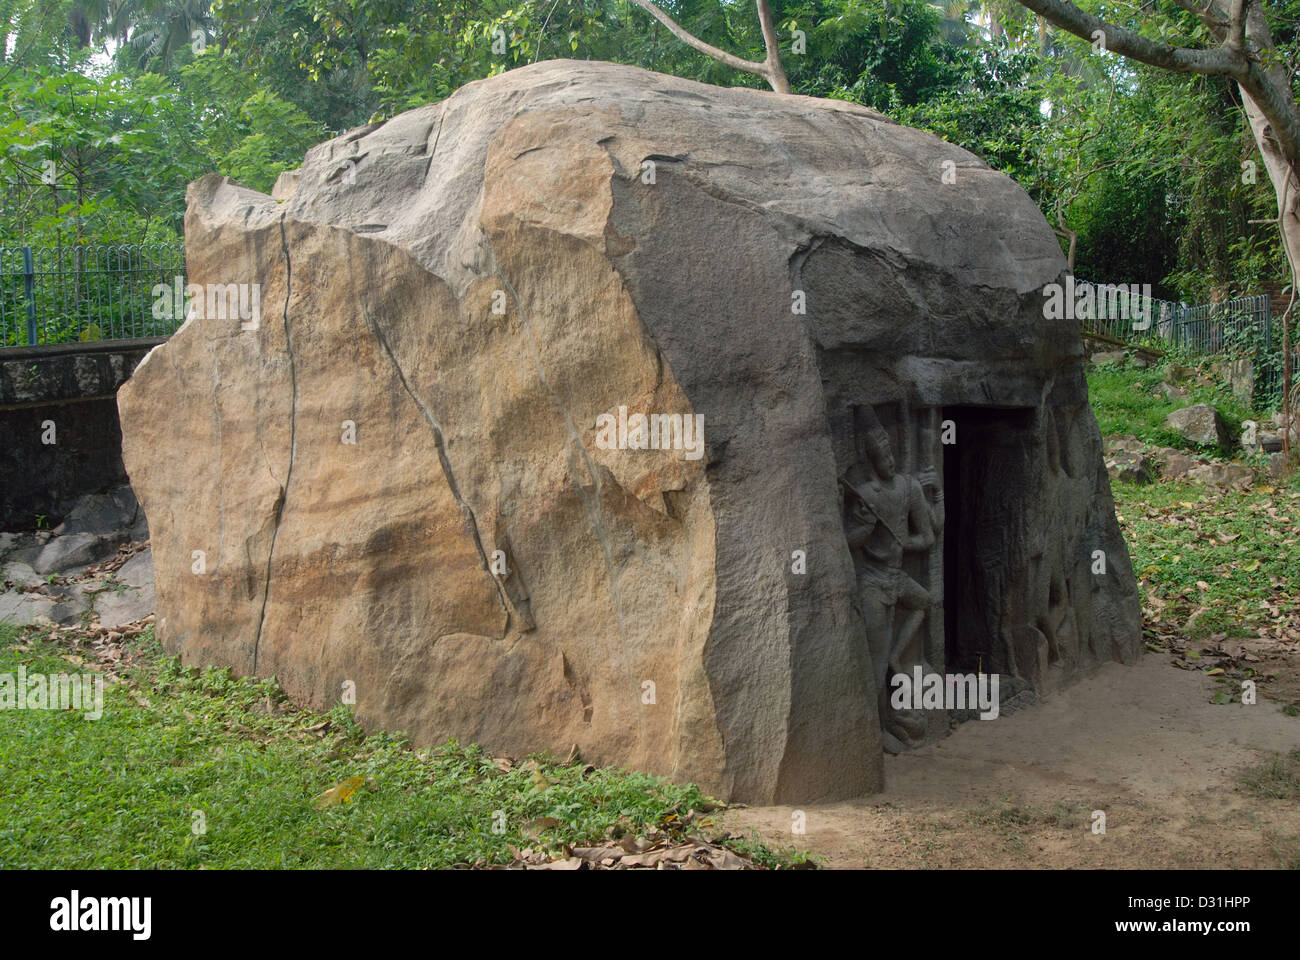 General-View of the rock-cut shrine, Vizhinjam, near Thiruvananthapuram. - Stock Image